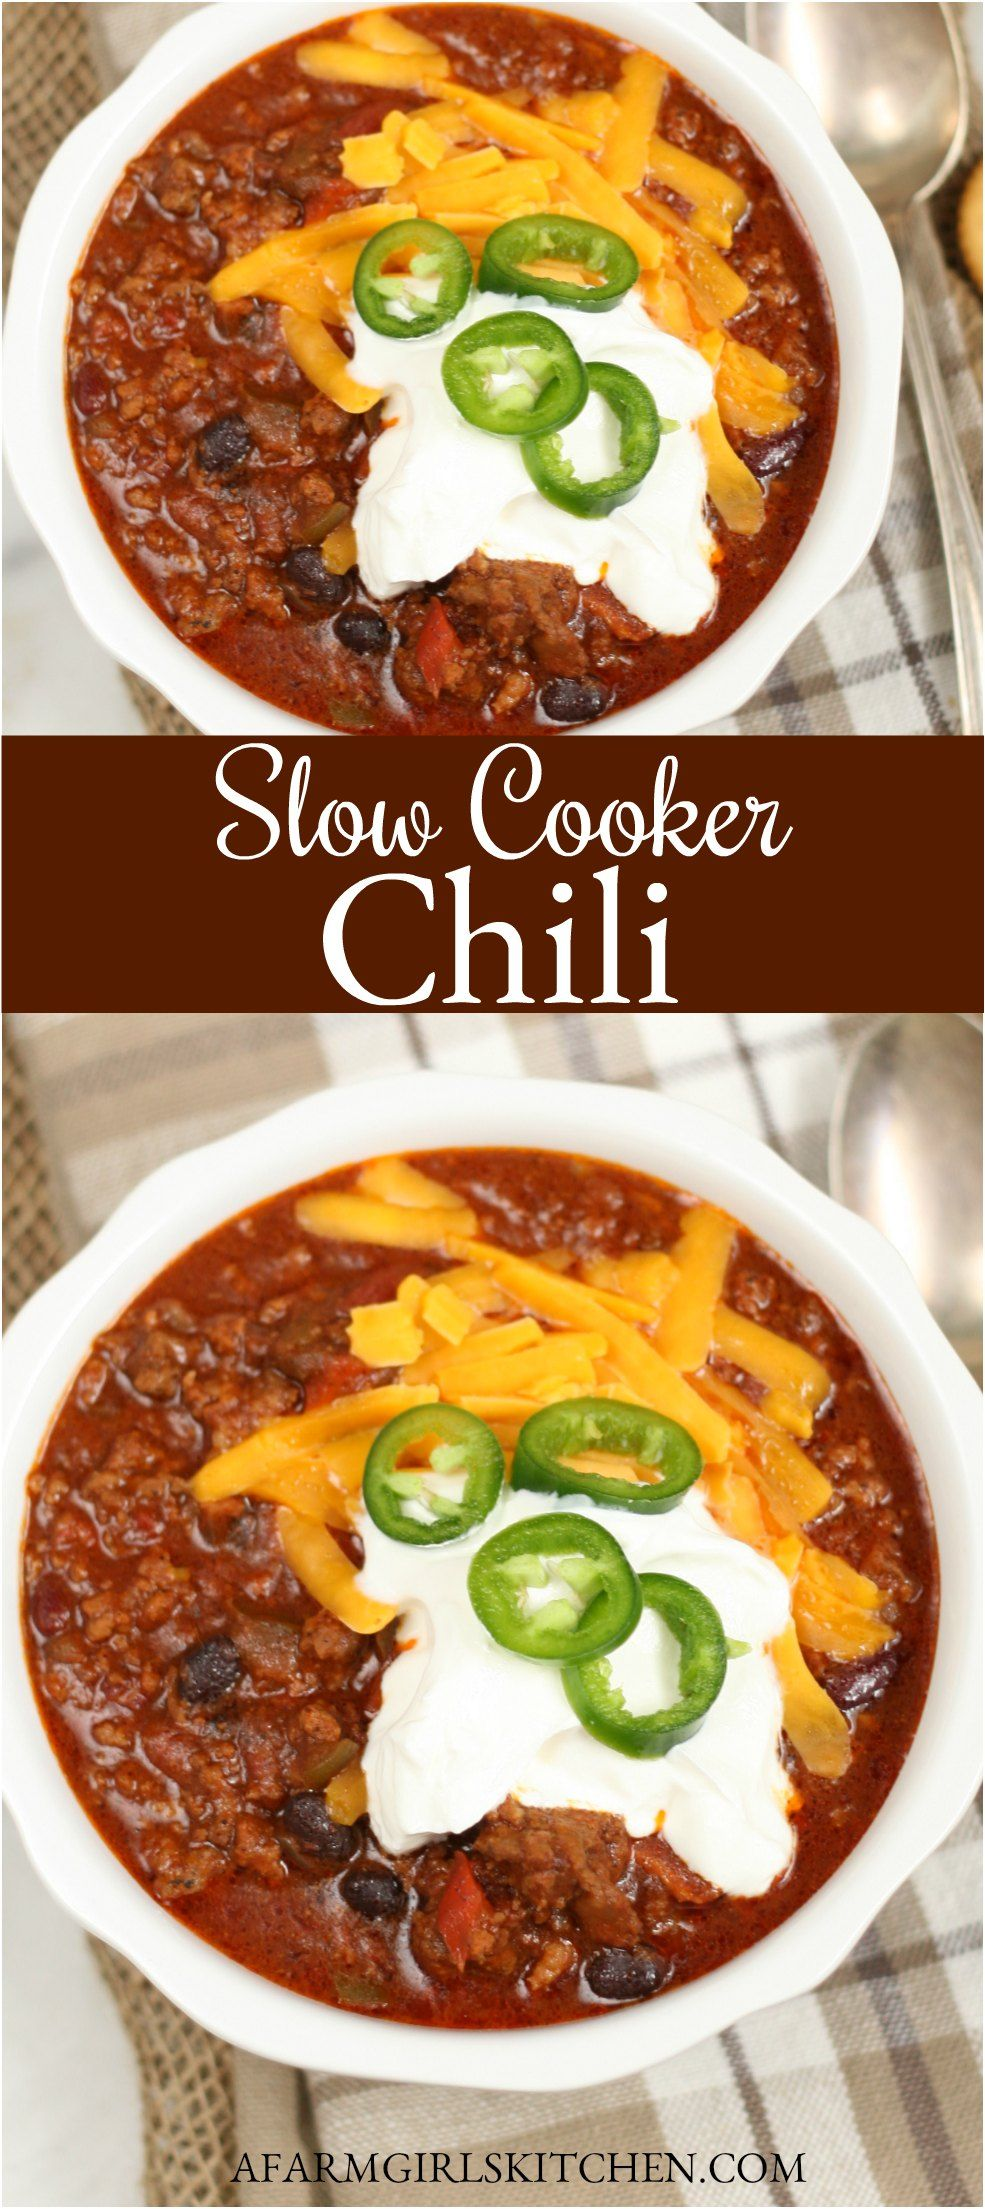 Slow Cooker Chili A Farmgirl S Kitchen In 2020 Beef Chili Recipe Ground Beef Chili Recipes Homemade Chili Recipe